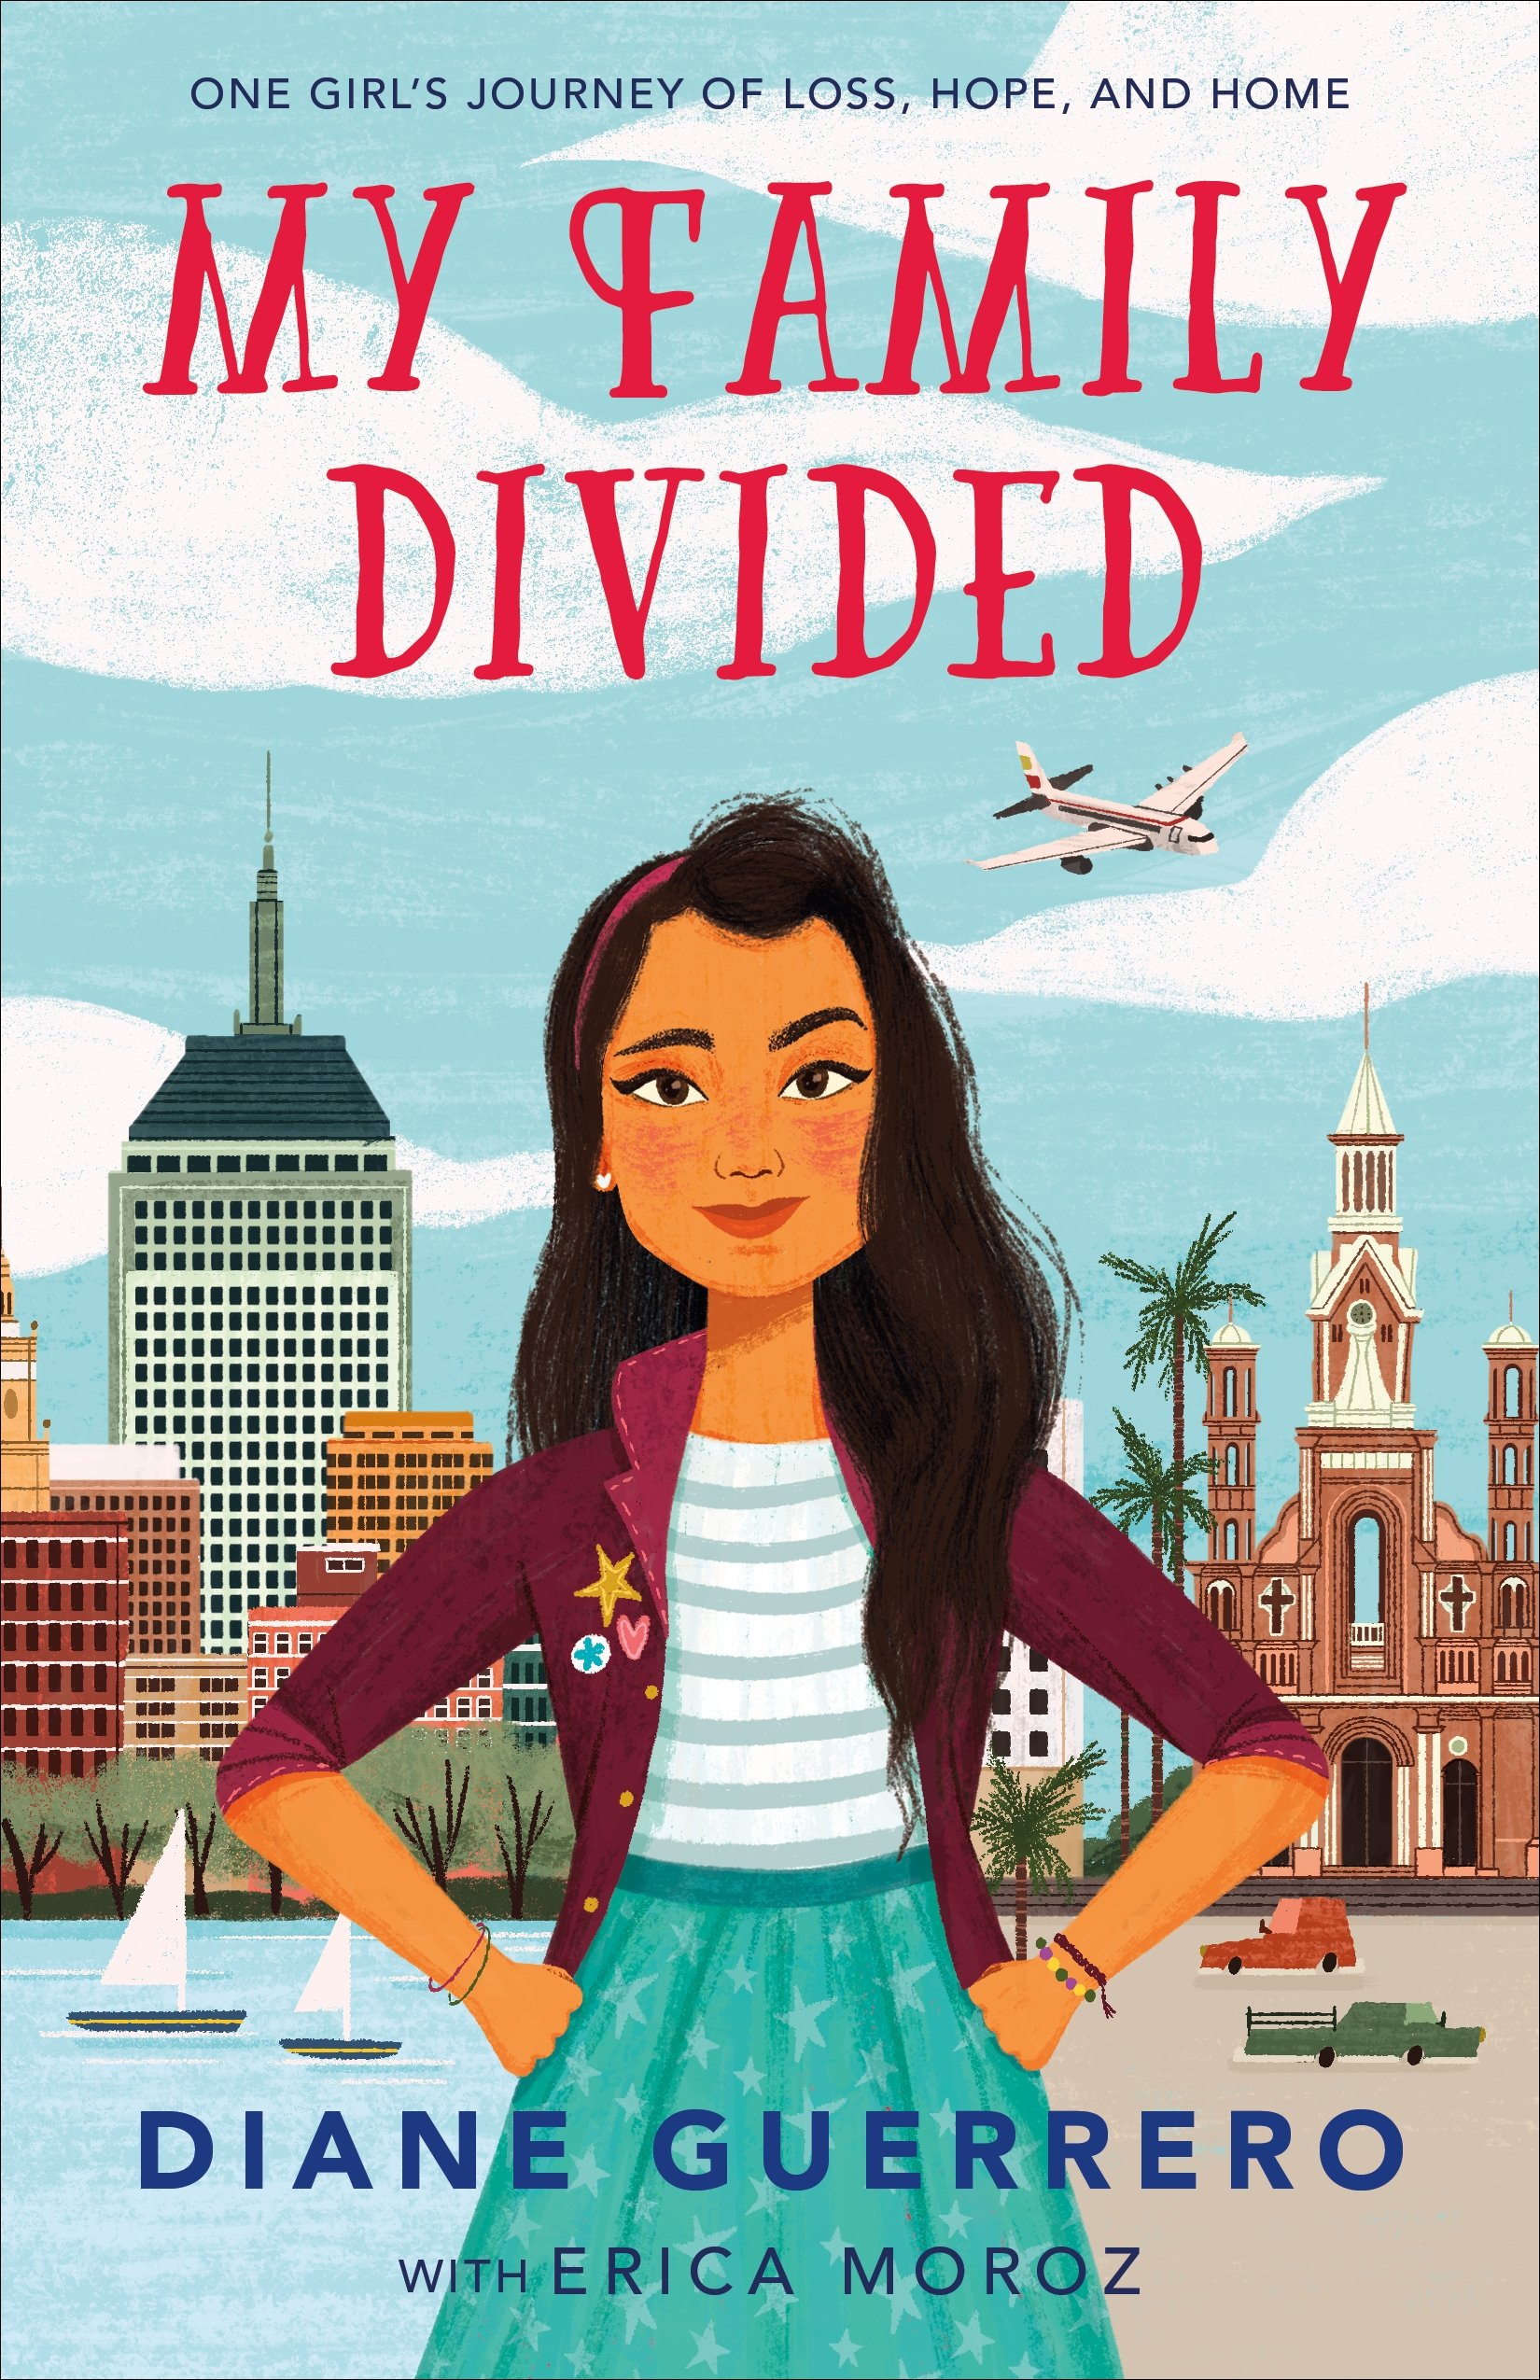 My Family Divided by Diane Guerrero with Erica Moroz | SLJ Review